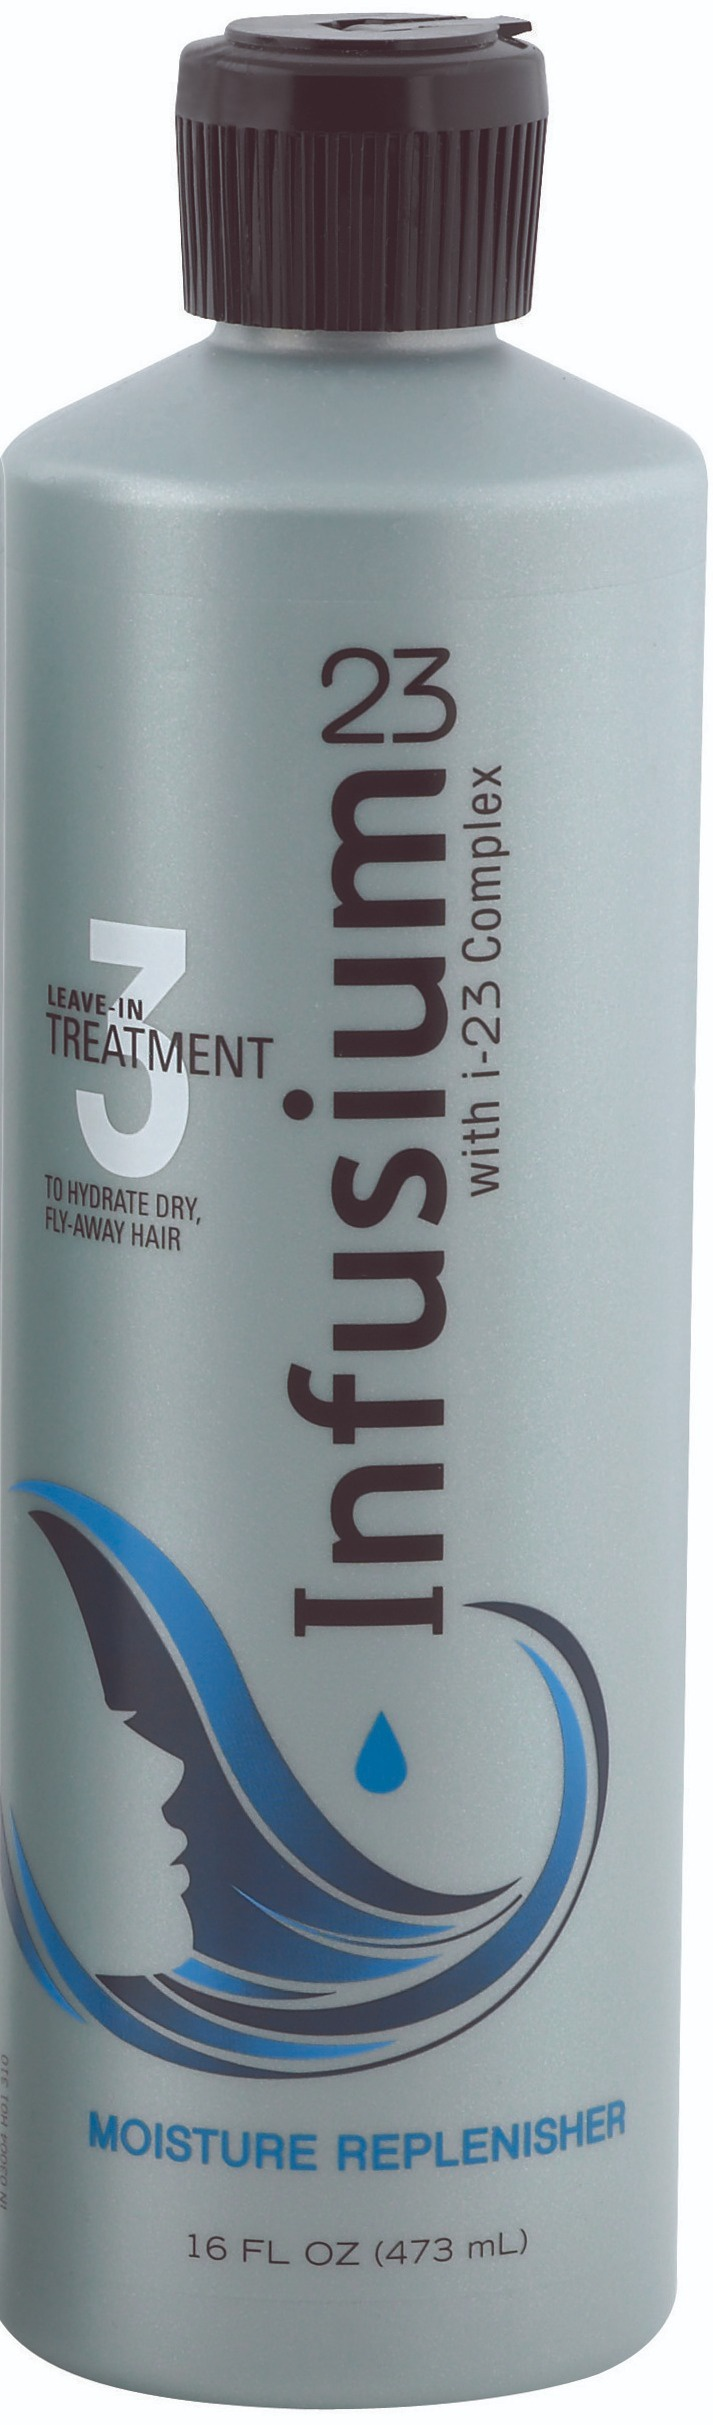 Infusium 23 Moisture Replenisher Leave-in Conditioner